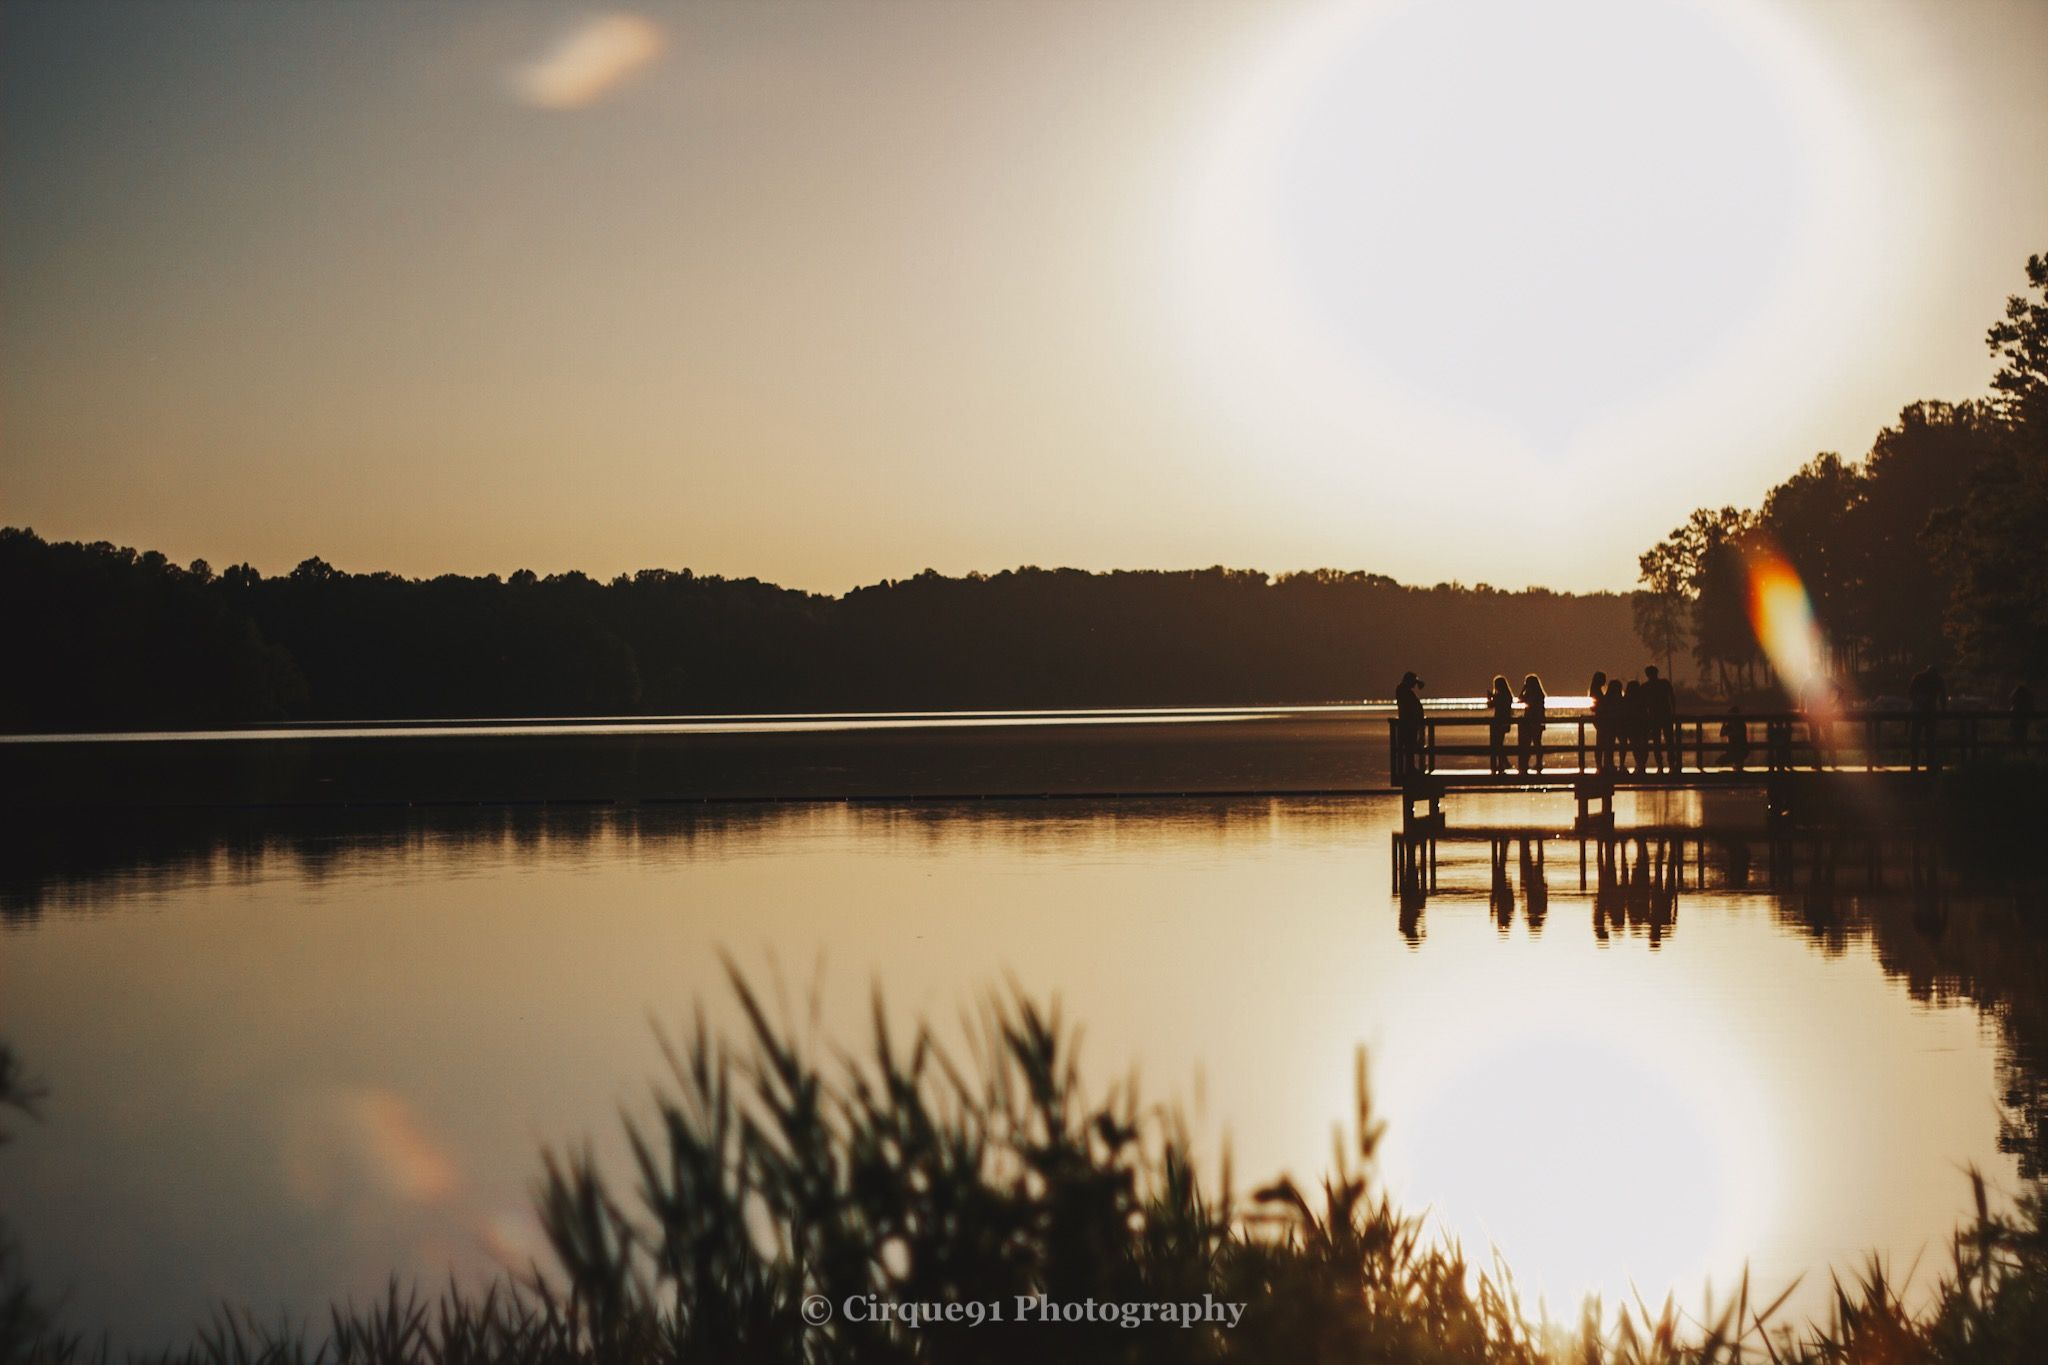 a group of people standing on the dock in reidsville lake during golden hour